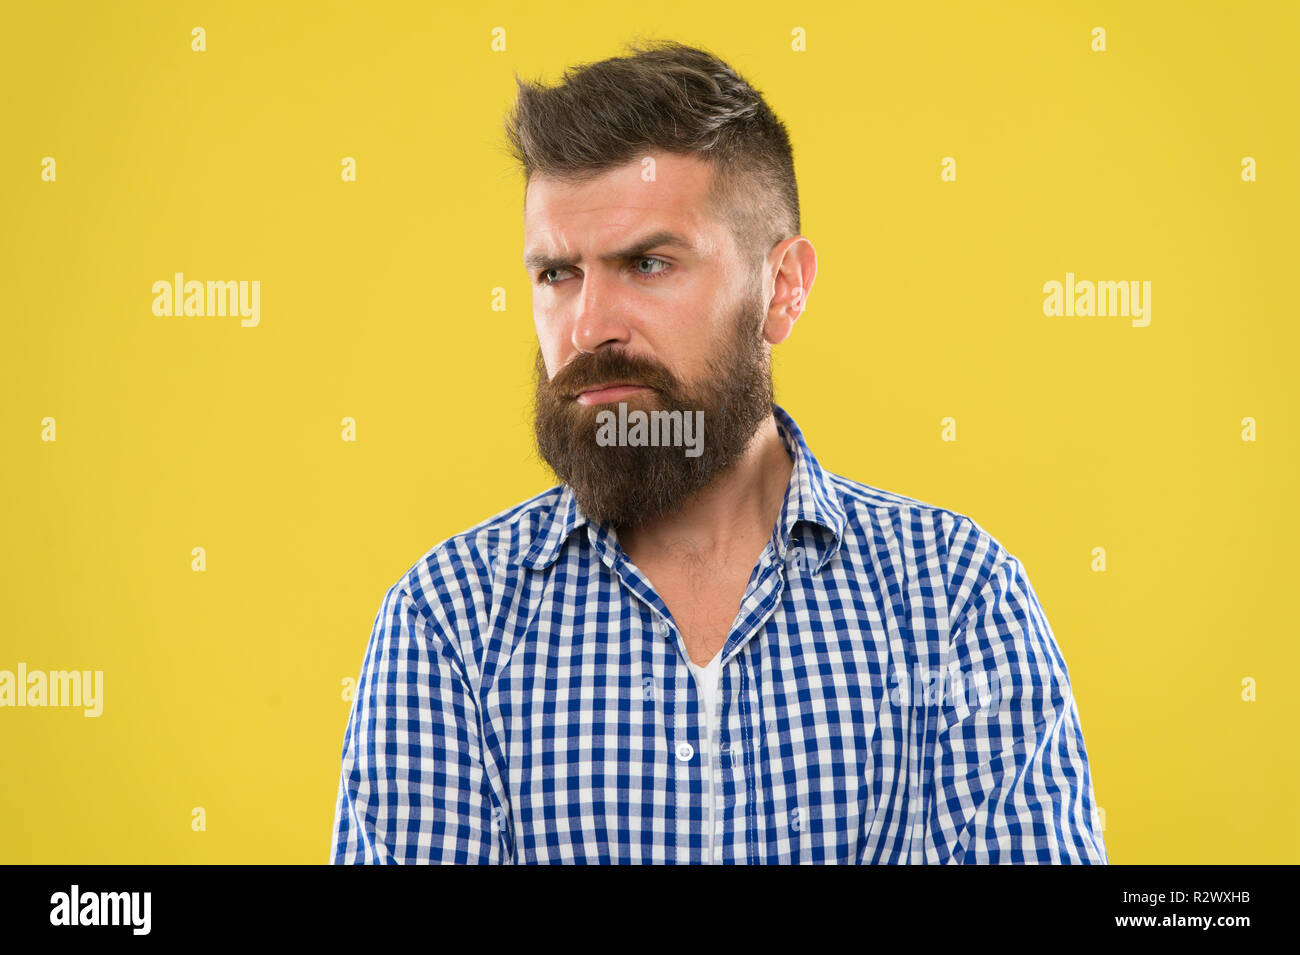 Hipster Appearance Beard Fashion And Barber Concept Man Bearded